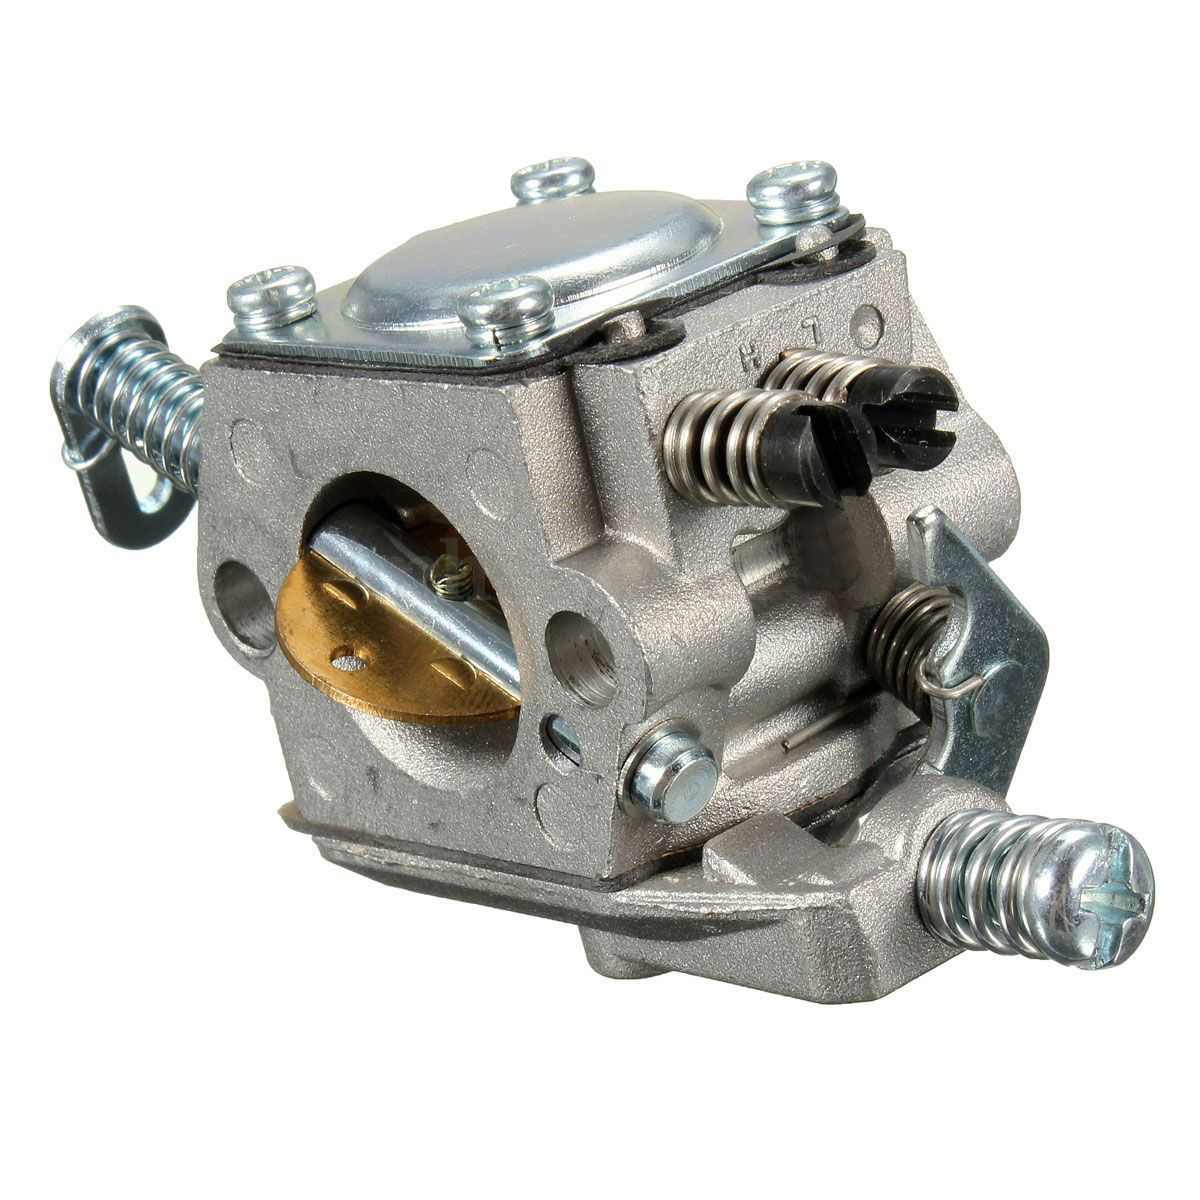 Carb Carburetor For STIHL 025 023 021 MS250 MS230 Zama Chainsaw Walbro Replace Silver